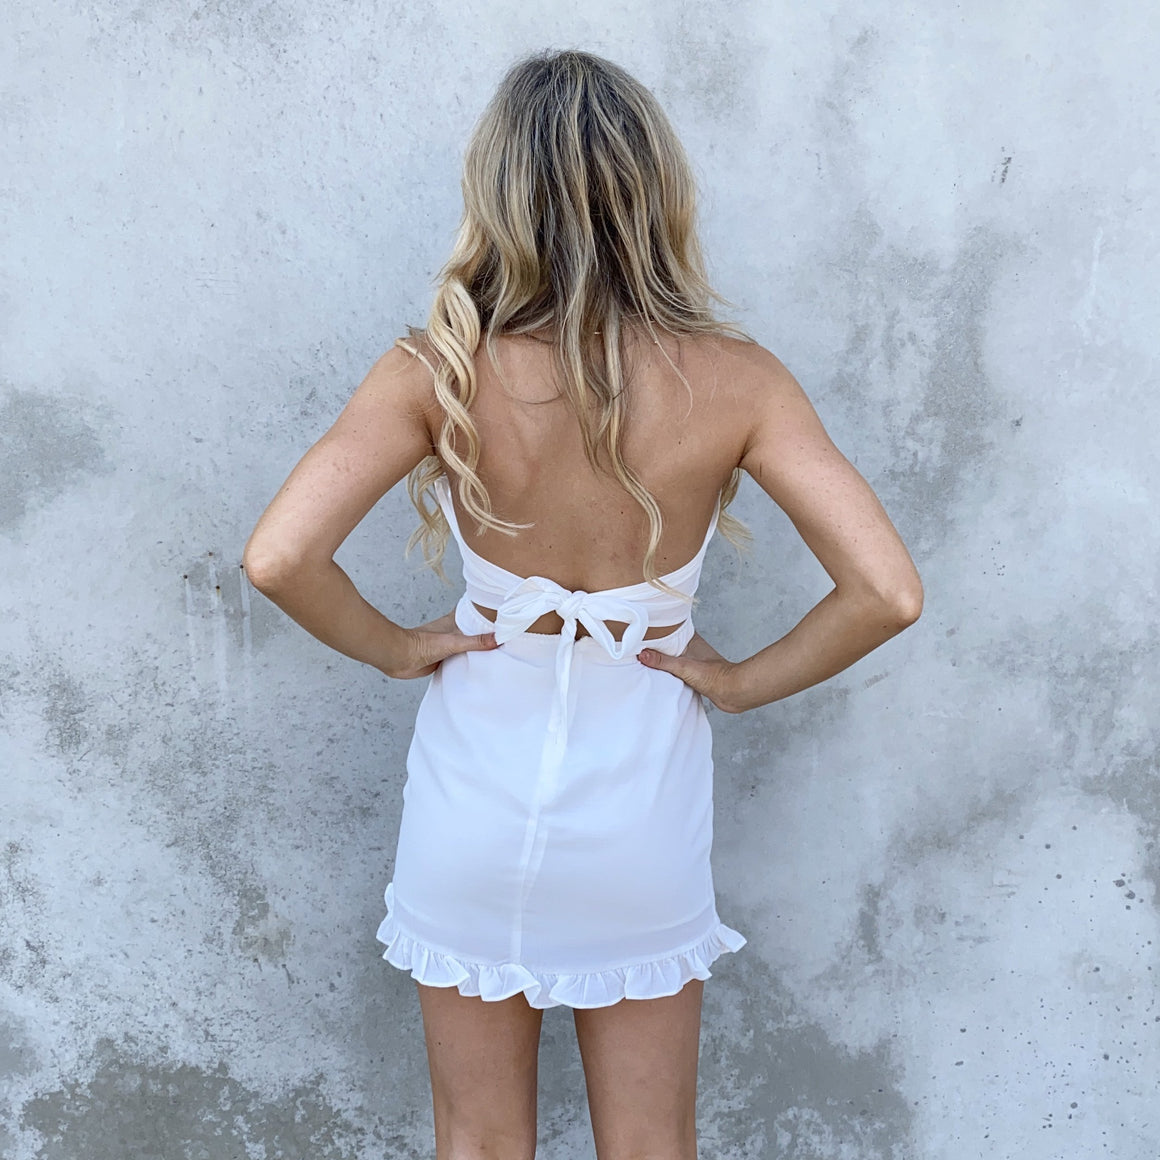 Dream Maker Strapless White Dress - Dainty Hooligan